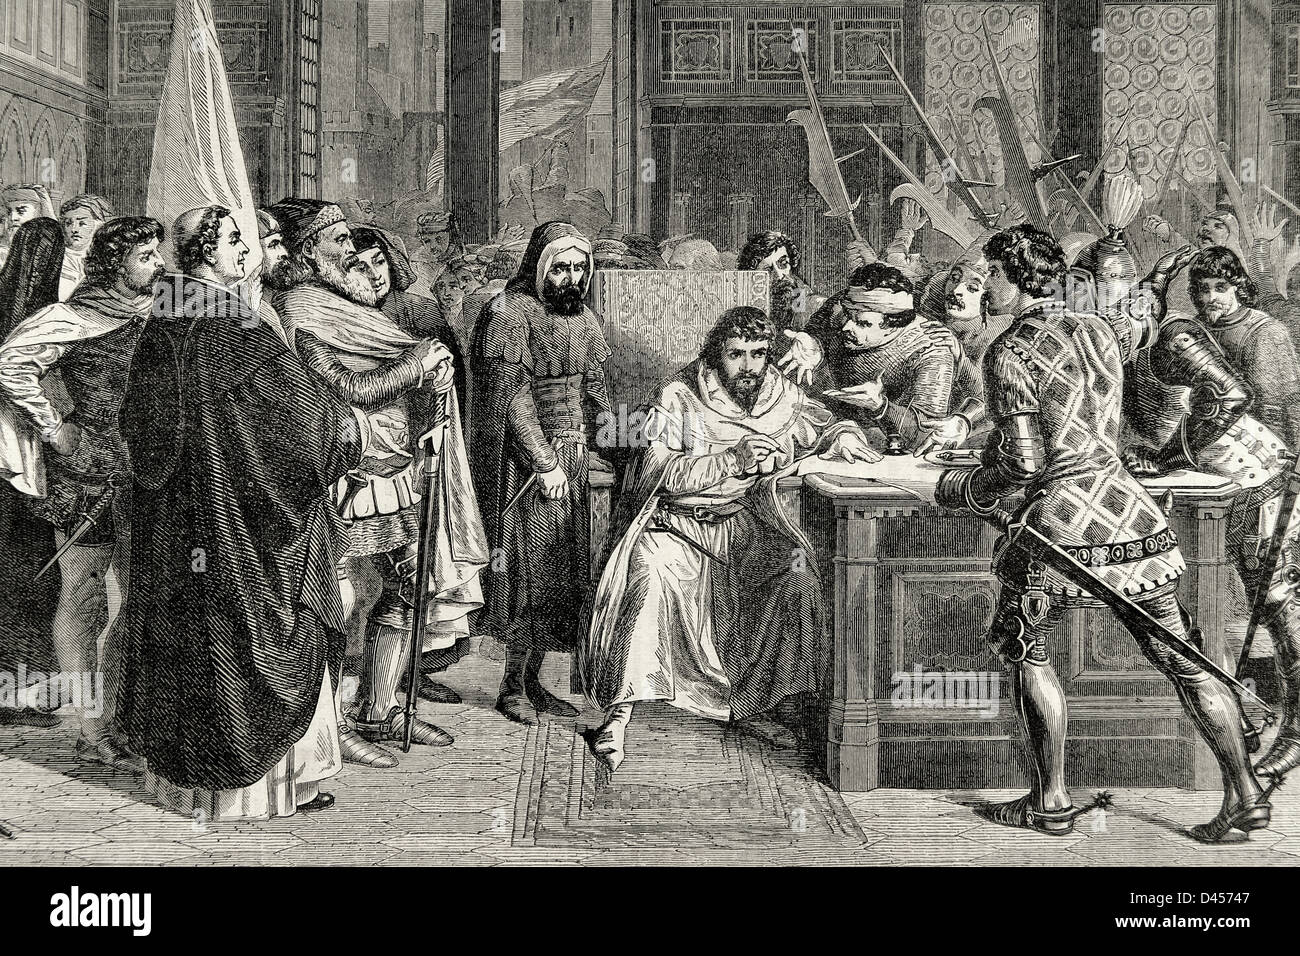 Walter VI, Count of Brienne (1302-1356), Conversano and Lecce. Duke of Athens. Expulsion of Florence of the Duke - Stock Image